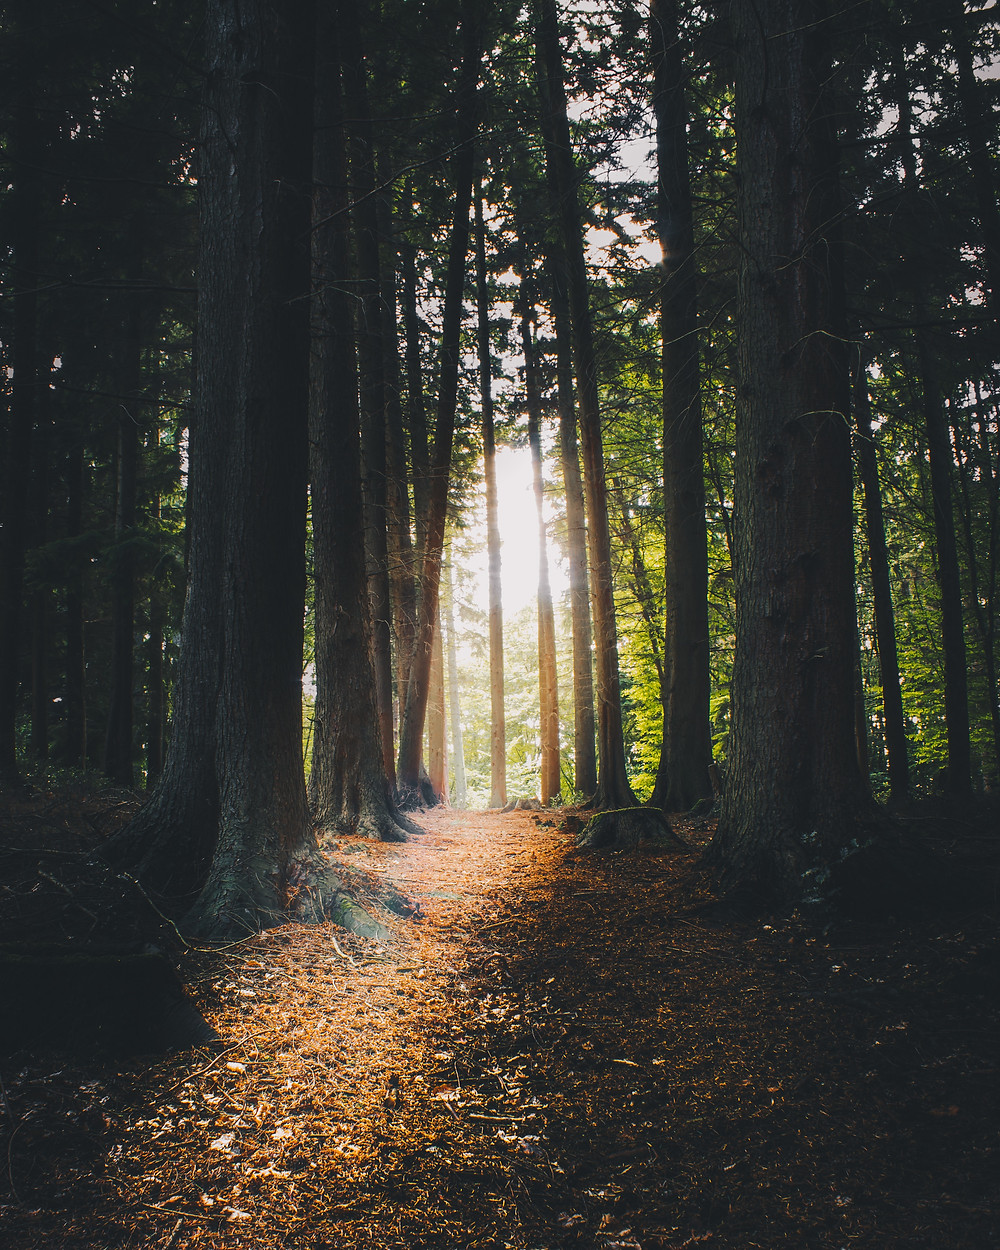 a picture of a path clearing in a forest with tall trees and sunlight leaking through